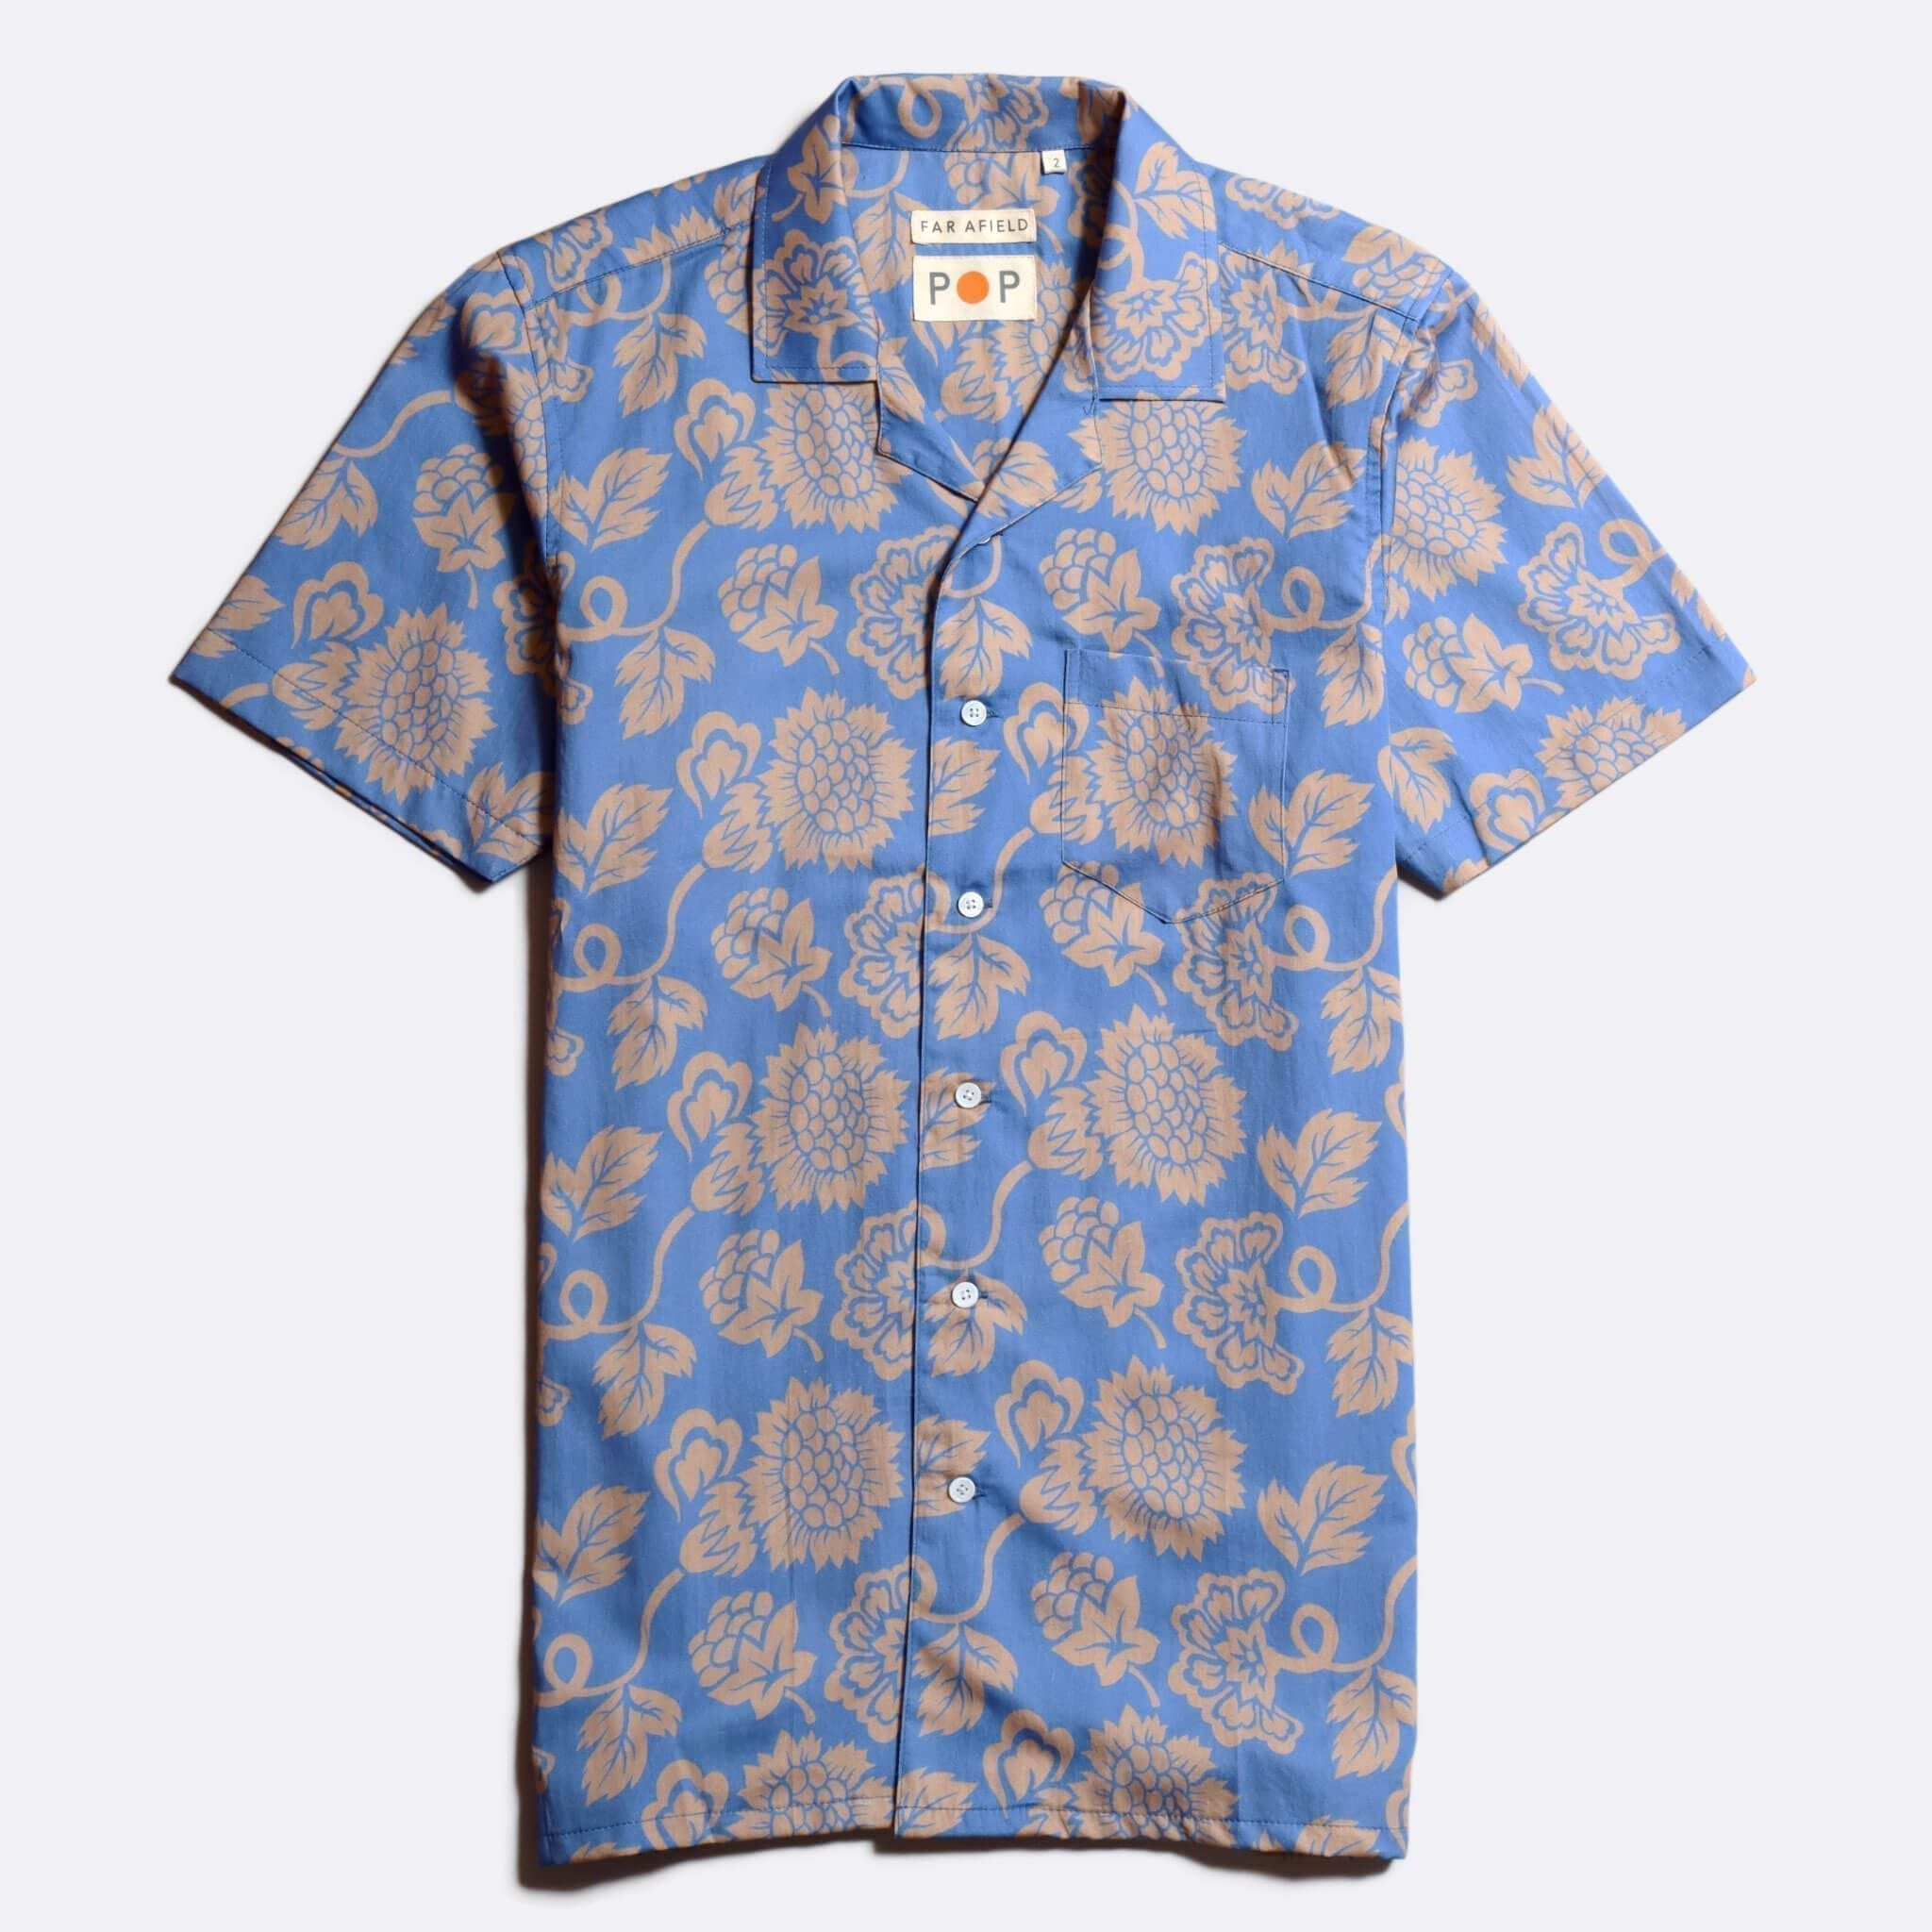 Far Afield 'POP' Stachio Short Sleeve Shirt a Blue Organic Cotton Fabric Keanu Reeves Hawaiian Bowling Style